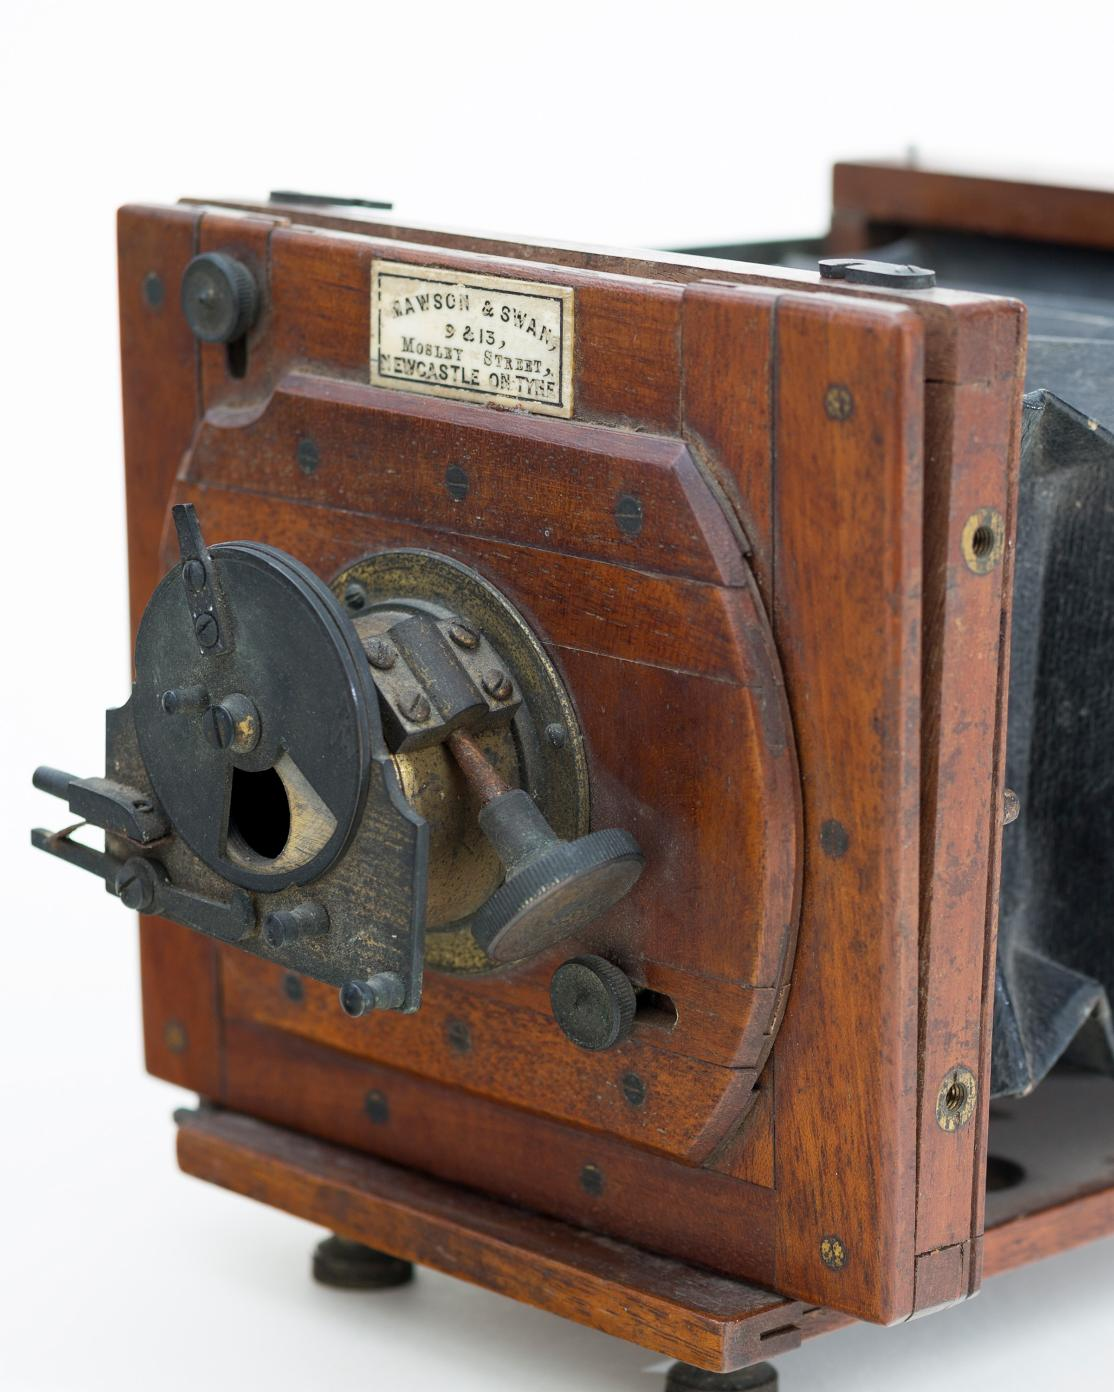 Taking a Photograph: Camera Technology of the Nineteenth Century